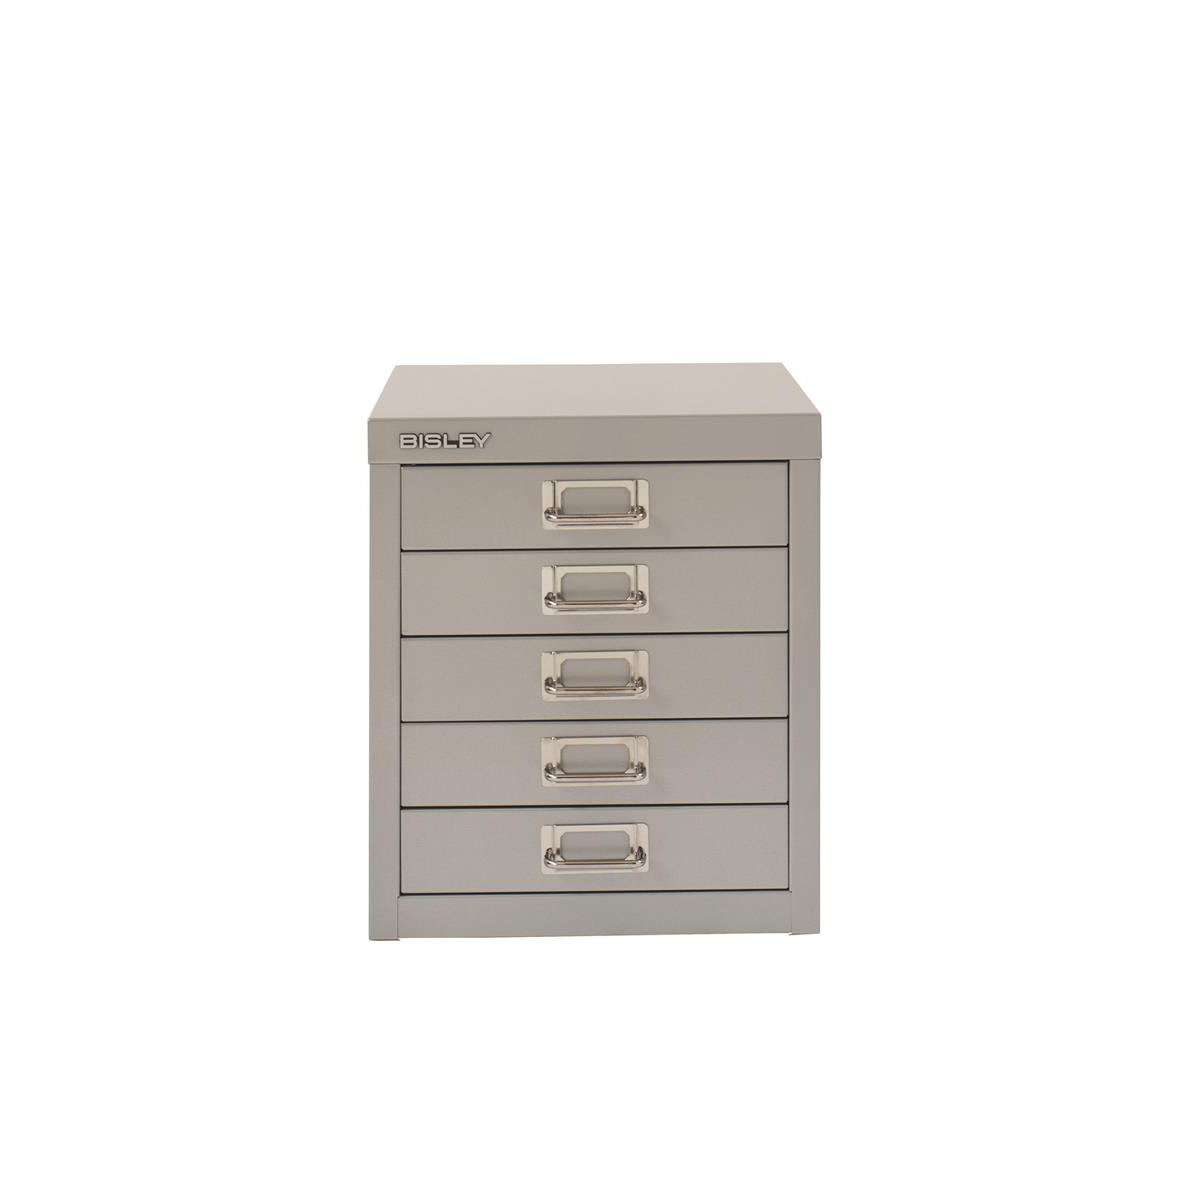 Image for Bisley SoHo 5 Draw Multidrawer 279x380x325mm Silver Ref H125NL-arn